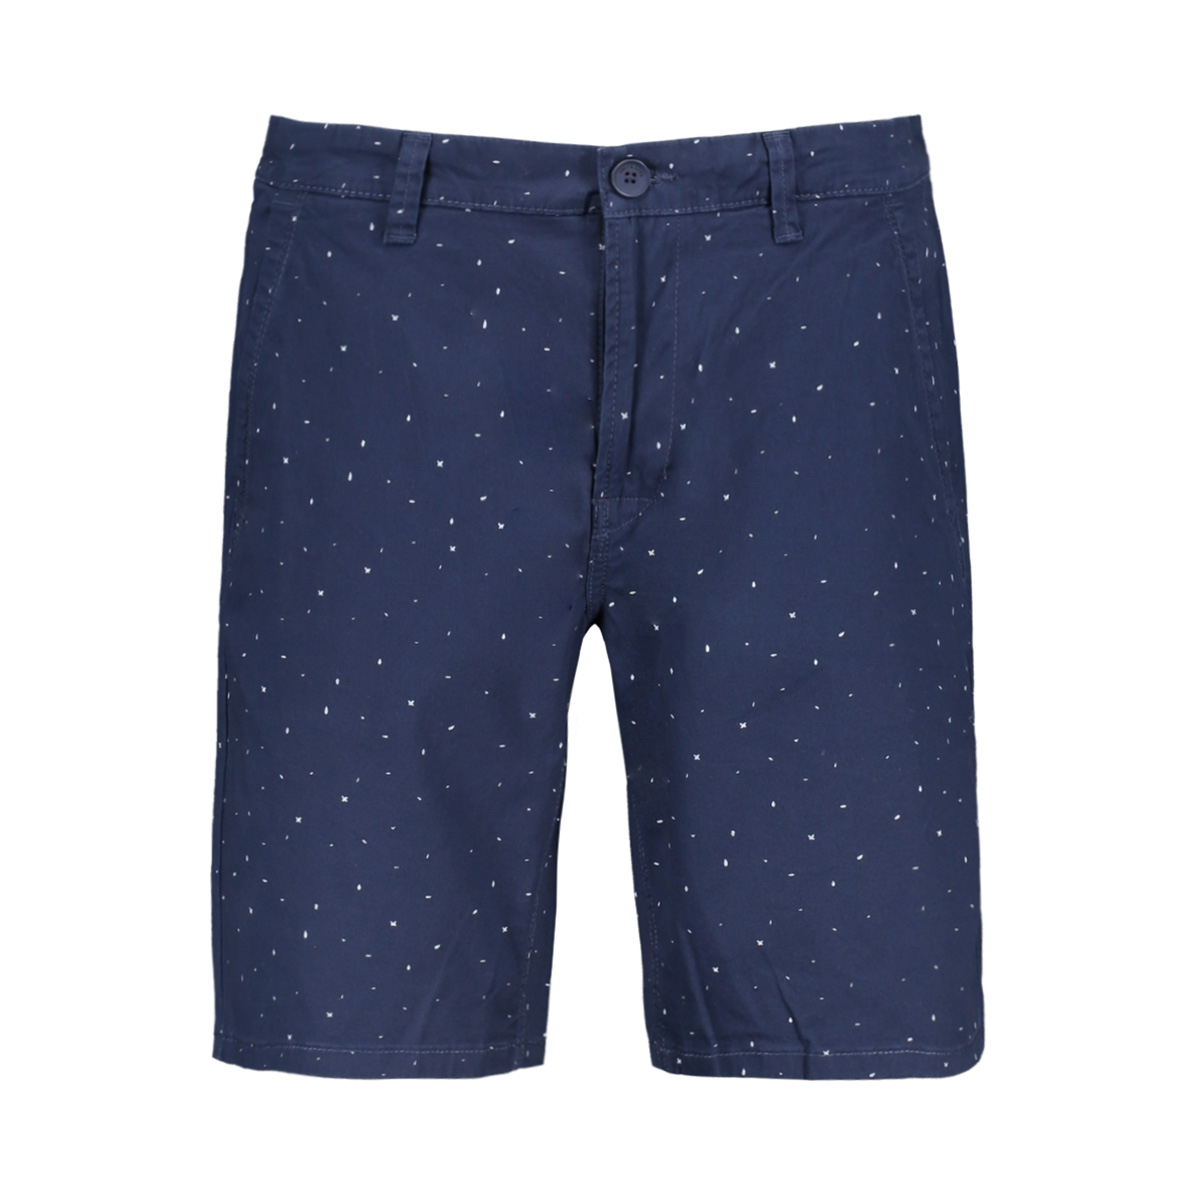 onsholm chino shorts aop pk 2468 22012468 only & sons korte broek dress blues